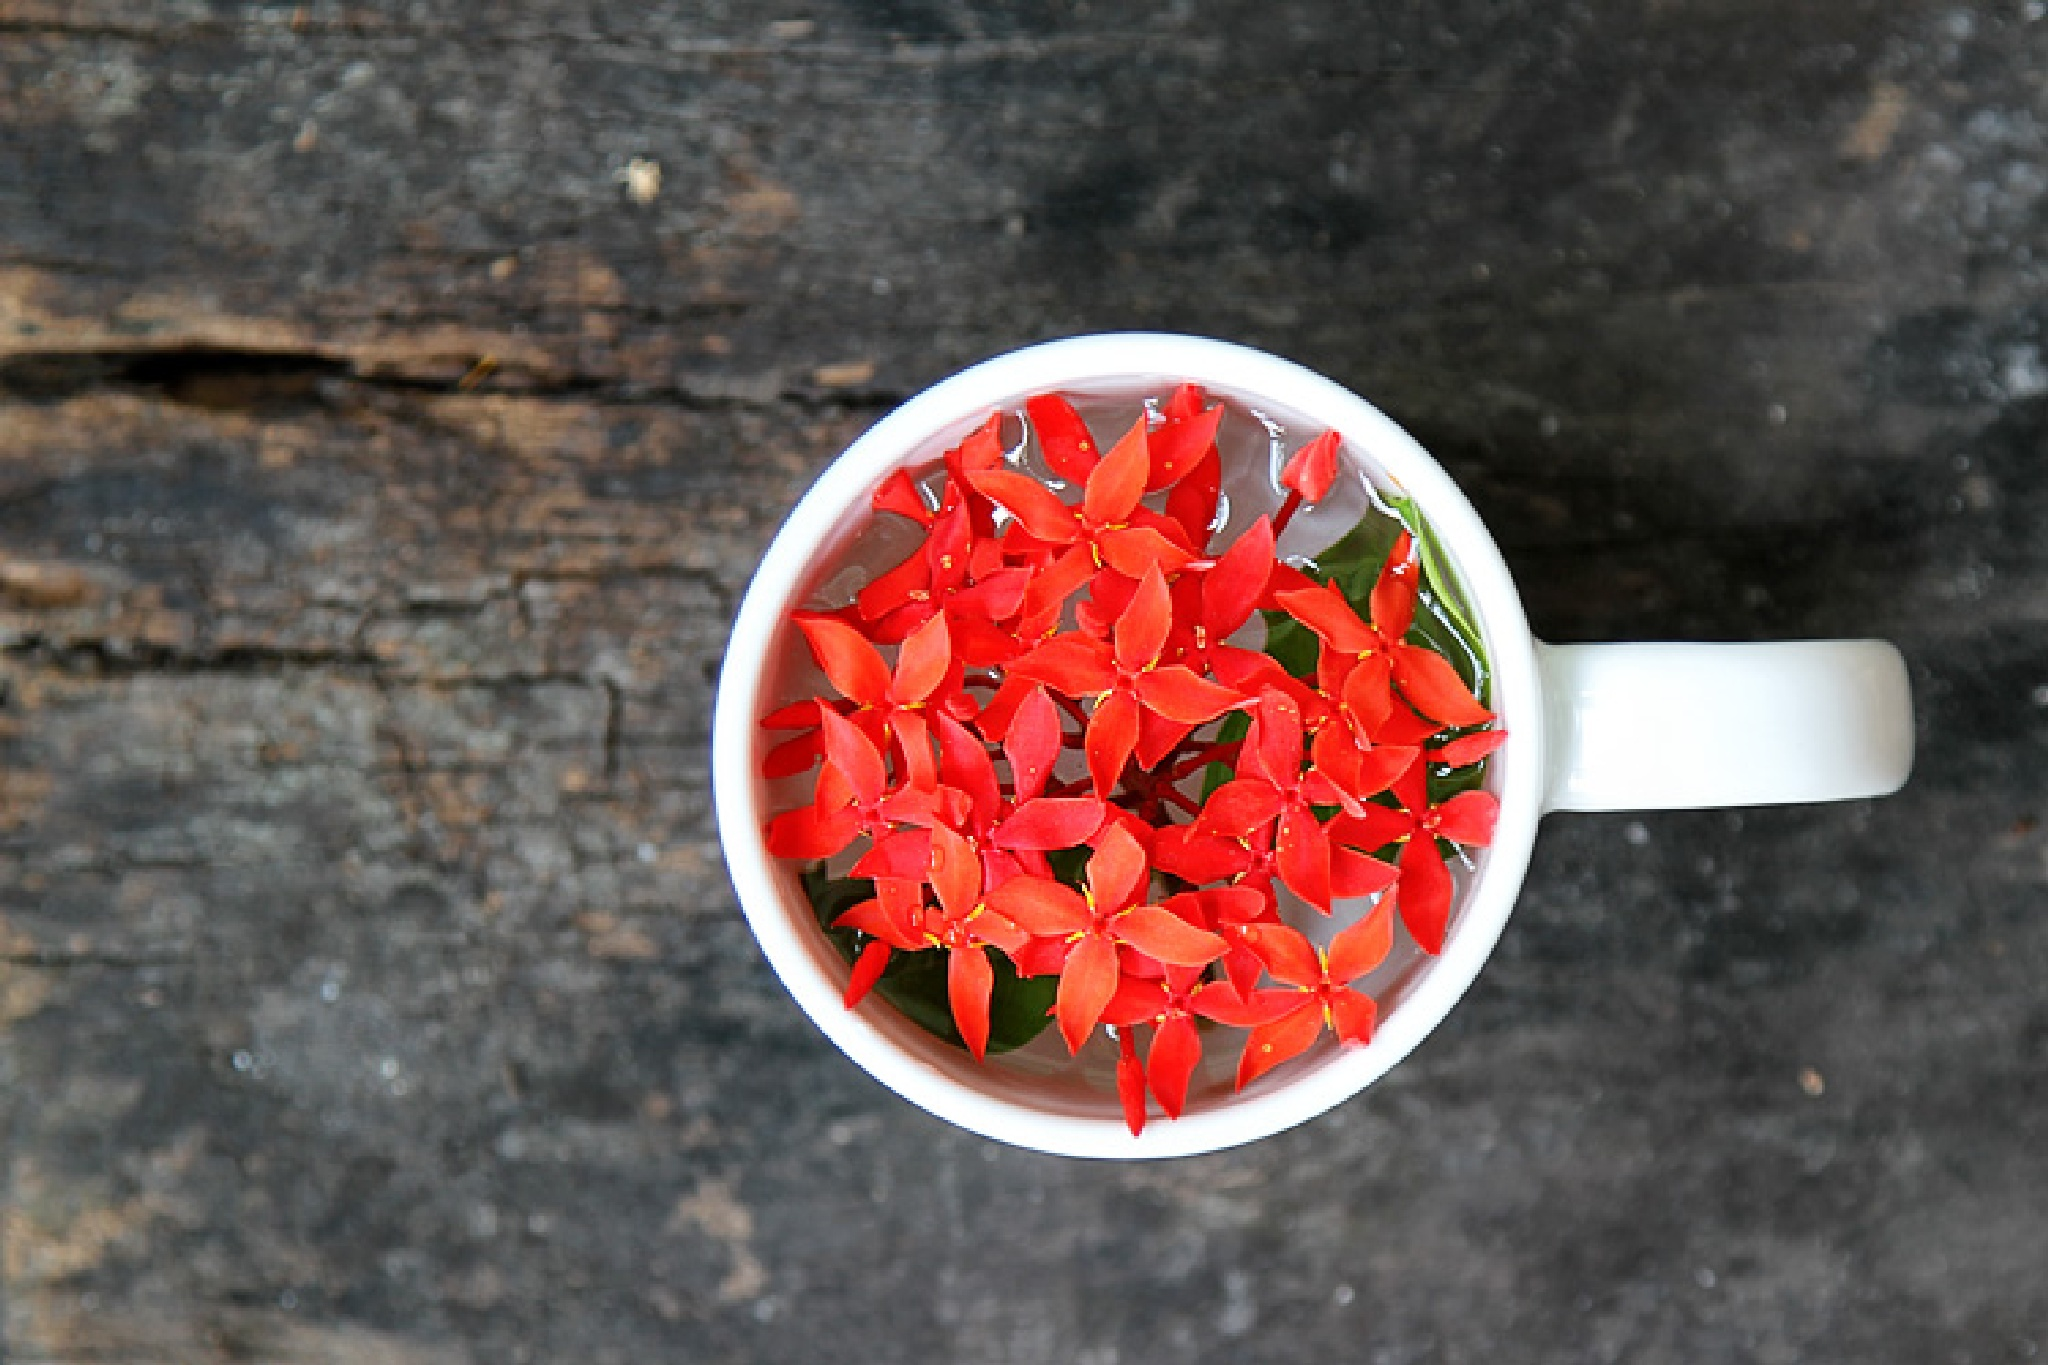 Red in the mug by linh